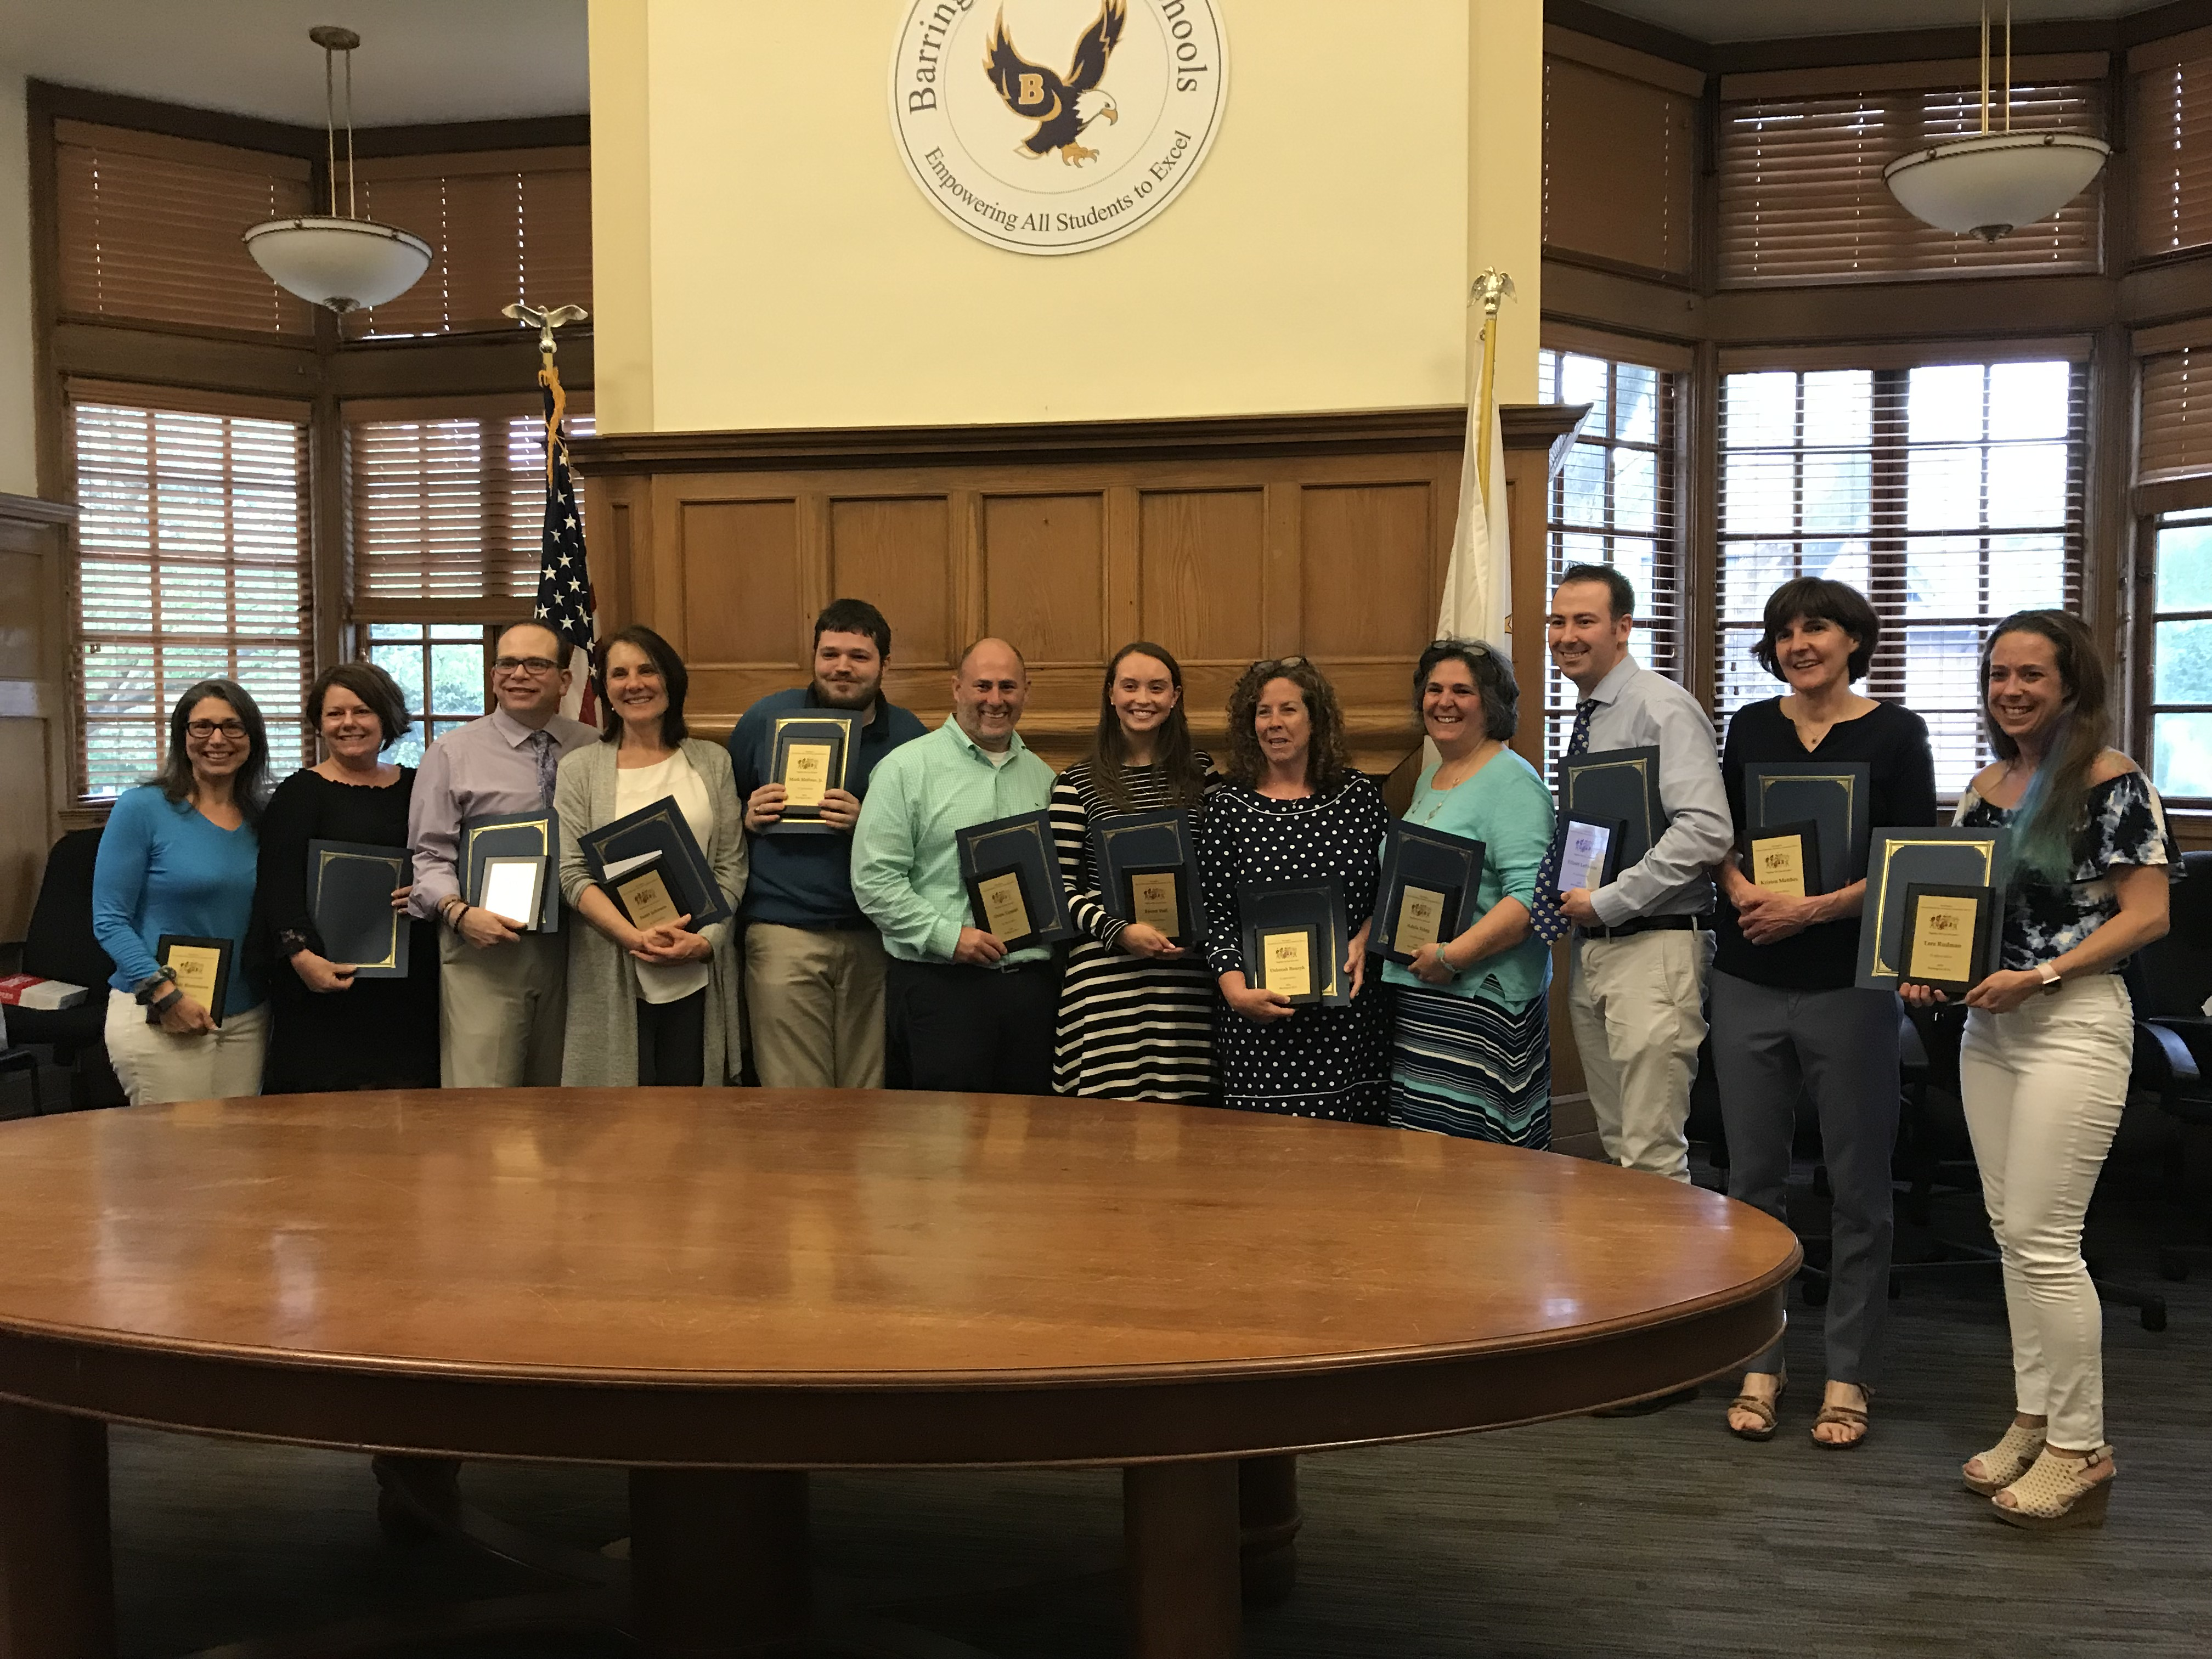 A photo of the 2018-19 winners of the SEAC Special Educator Awards